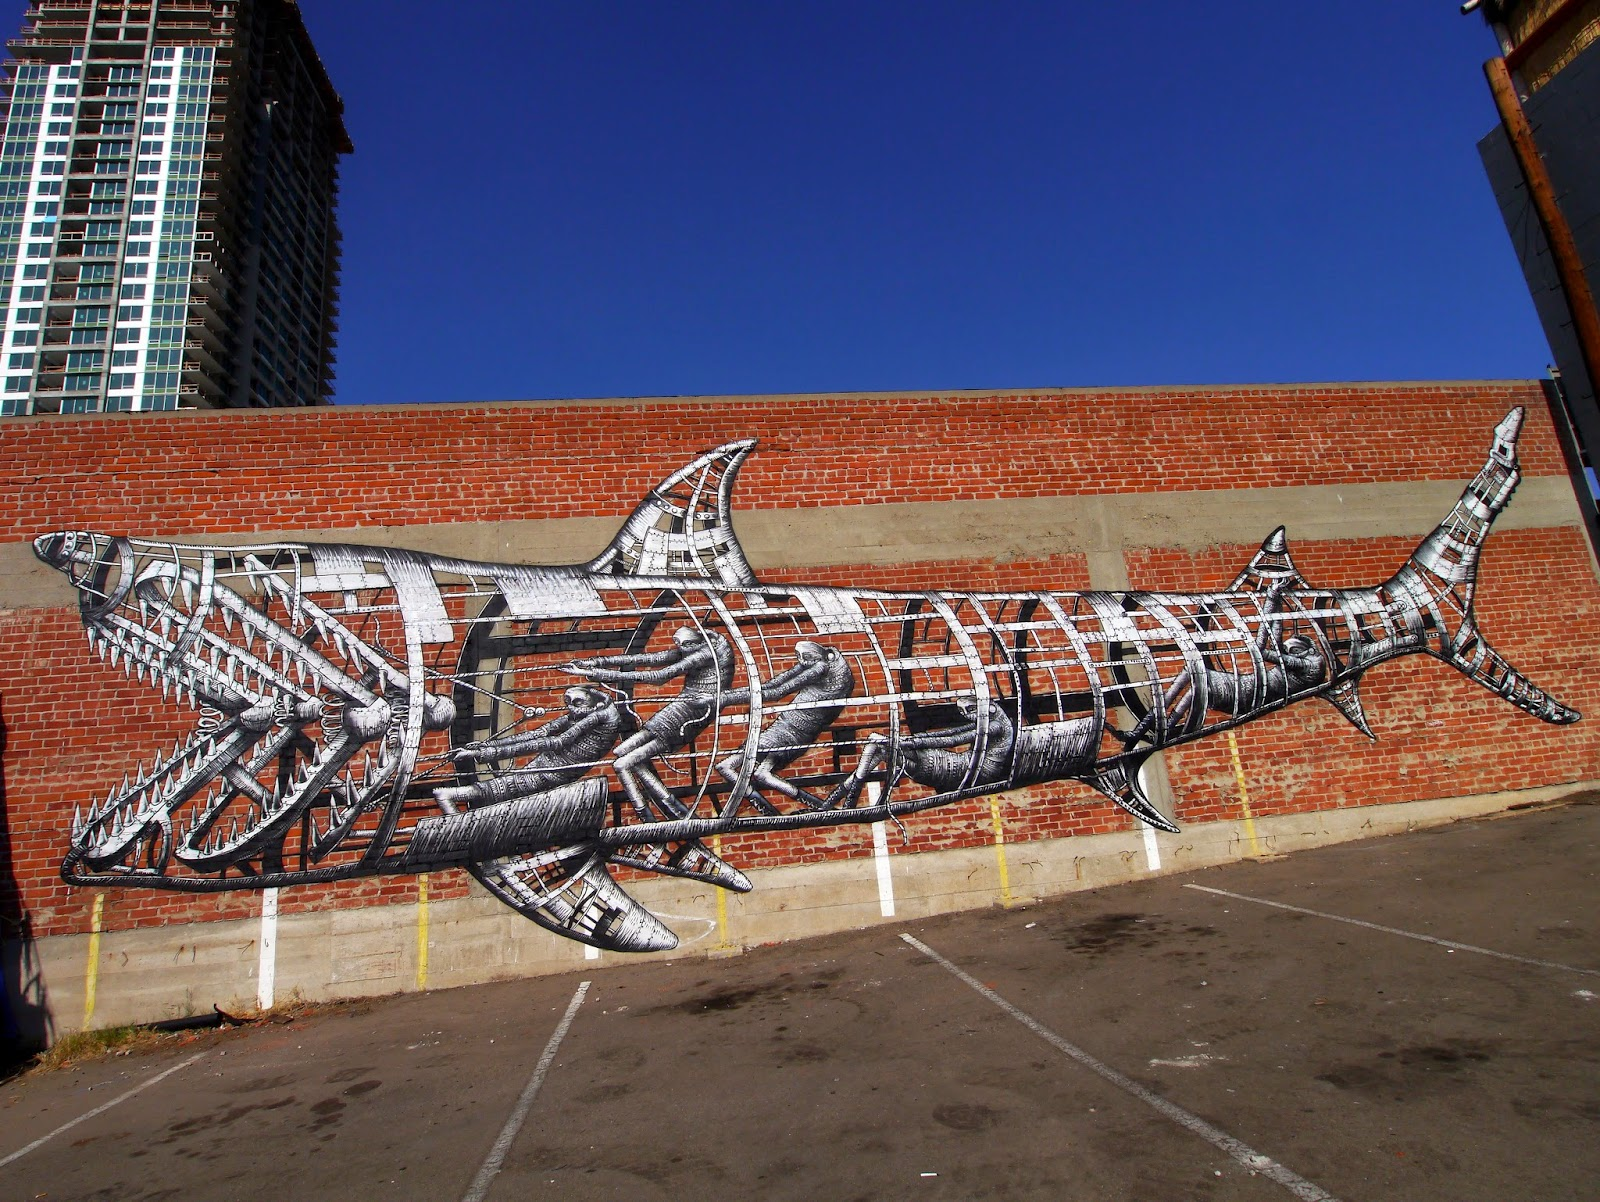 phlegm-new-mural-in-san-diego-california-02